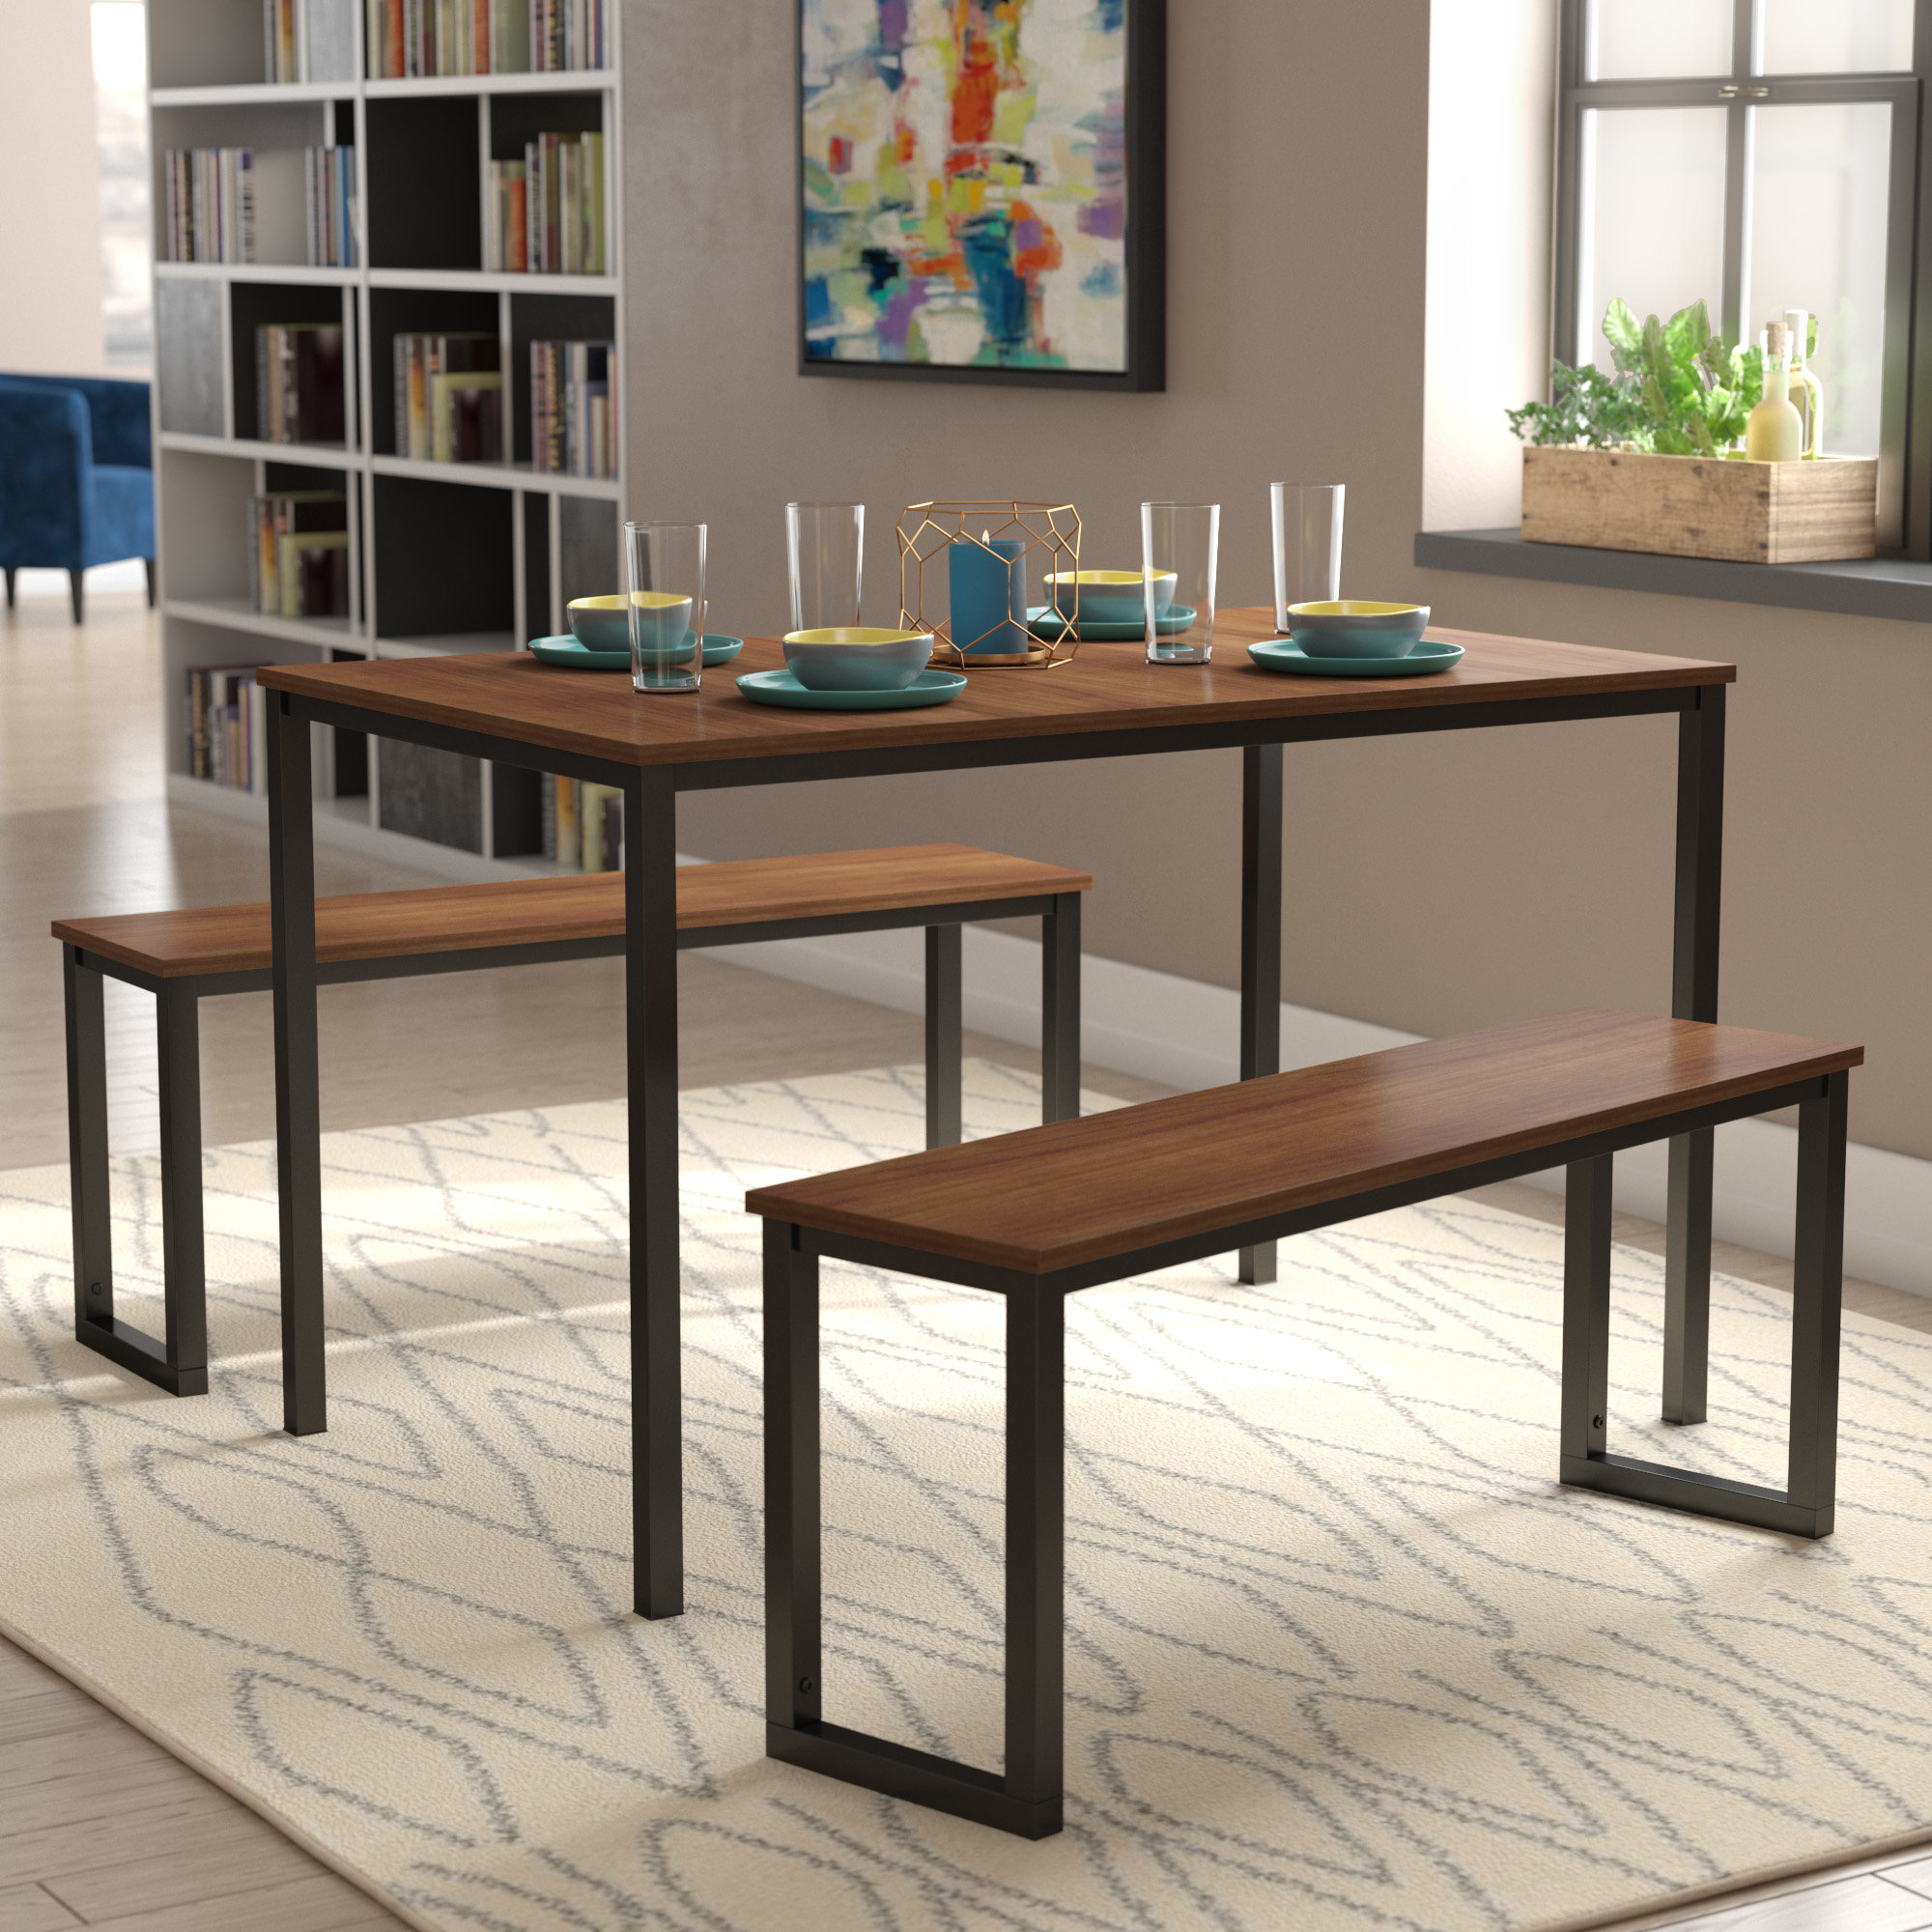 Modern Rustic Interiors Frida 3 Piece Dining Table Set Pertaining To Most Up To Date Shepparton Vintage 3 Piece Dining Sets (View 6 of 20)